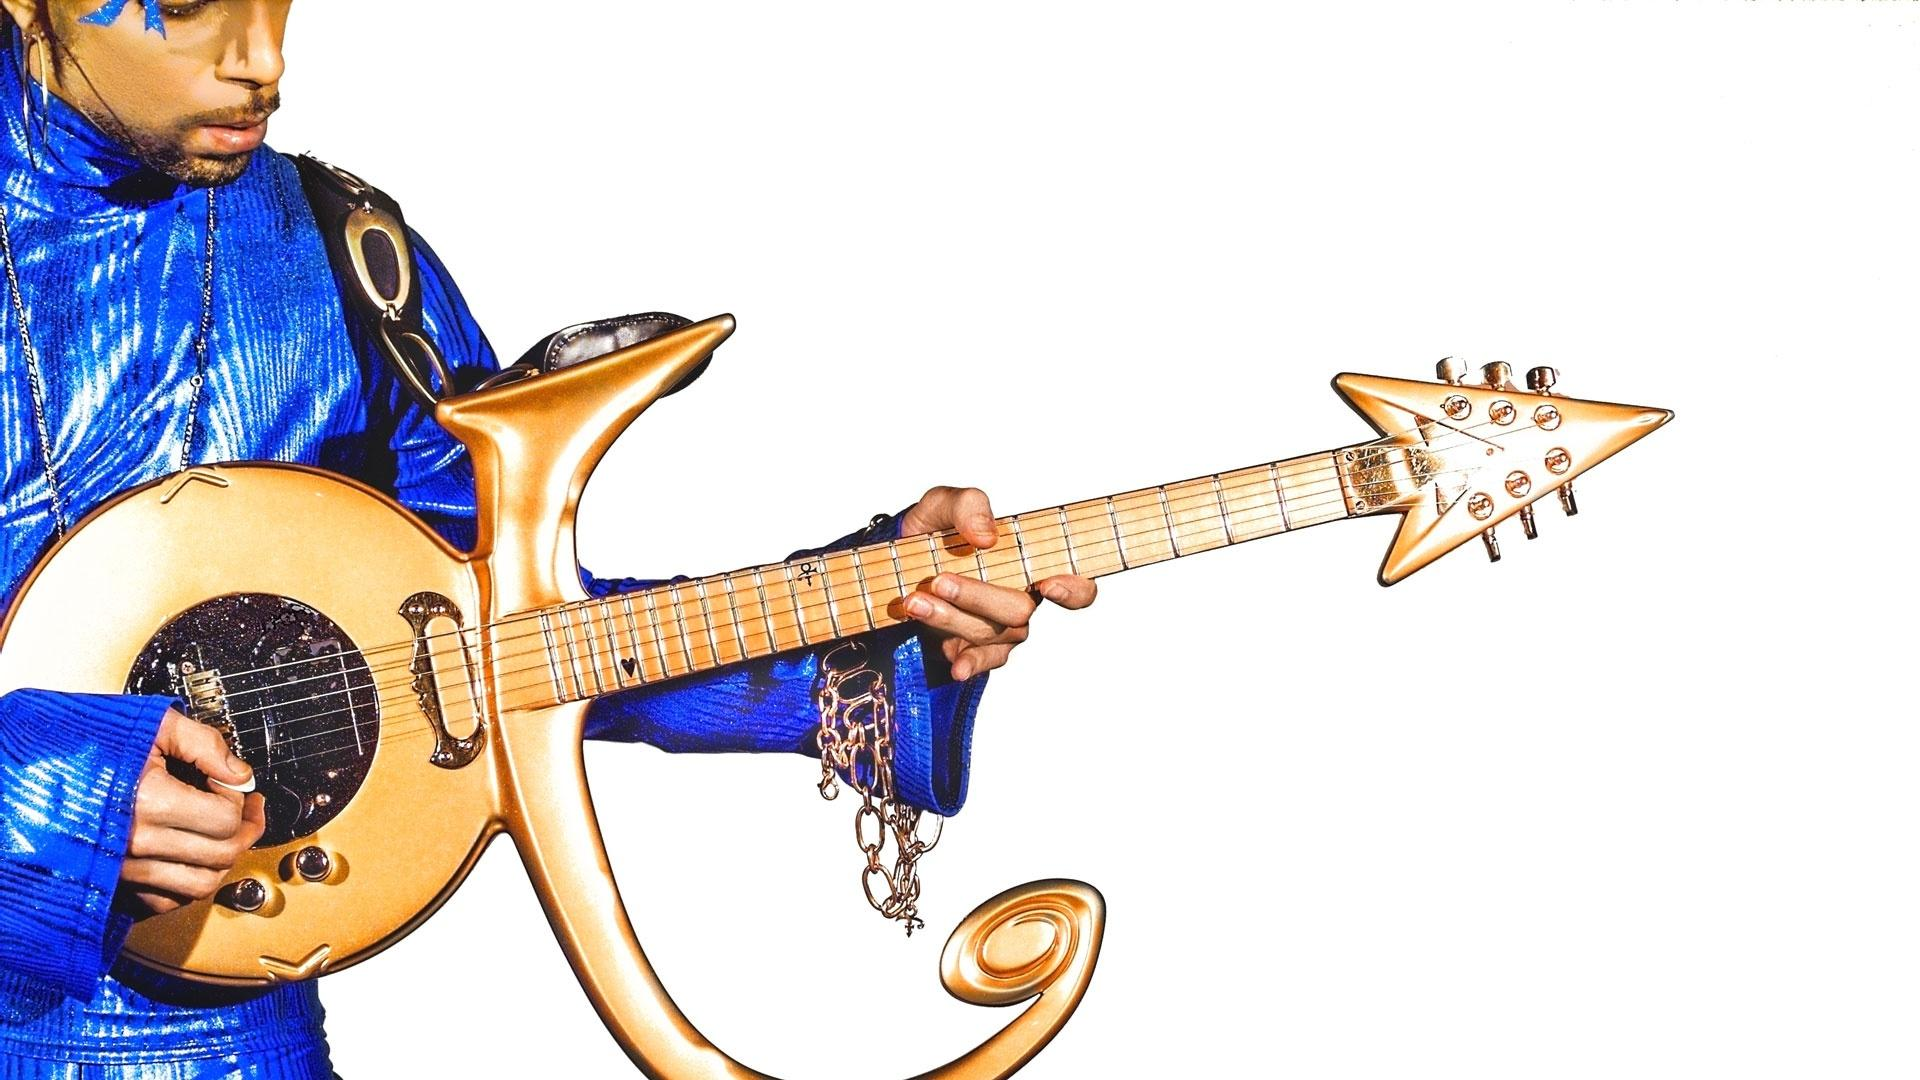 Prince in blue with gold symbol guitar